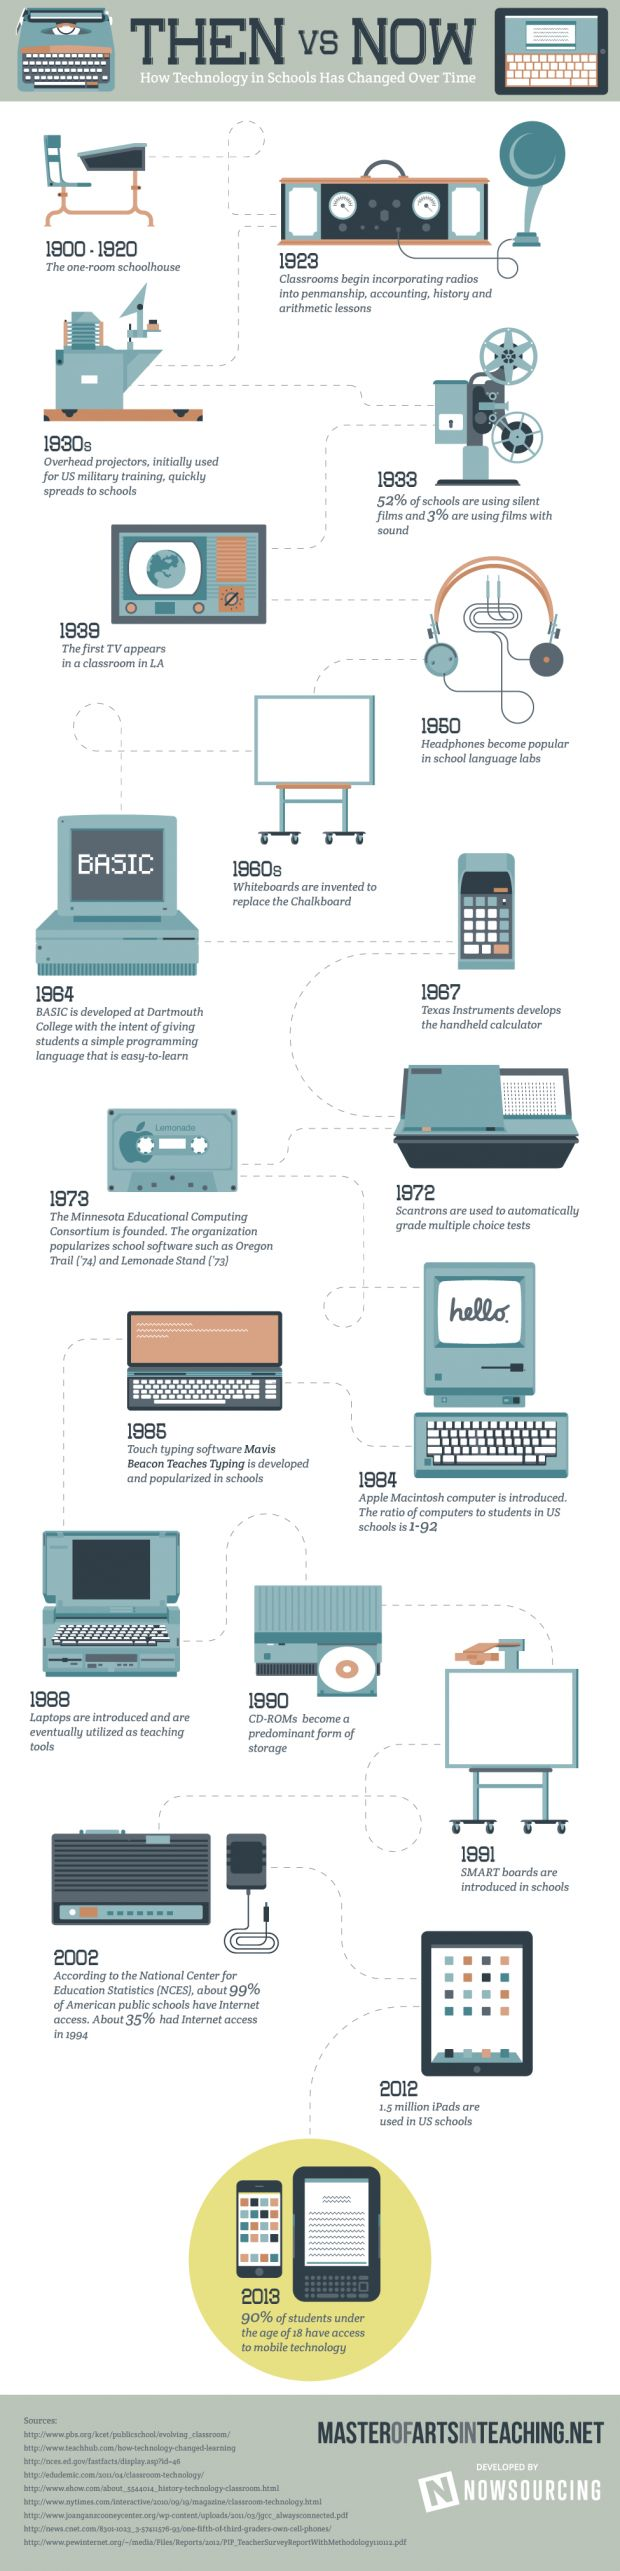 Then vs Now: Technology in Schools